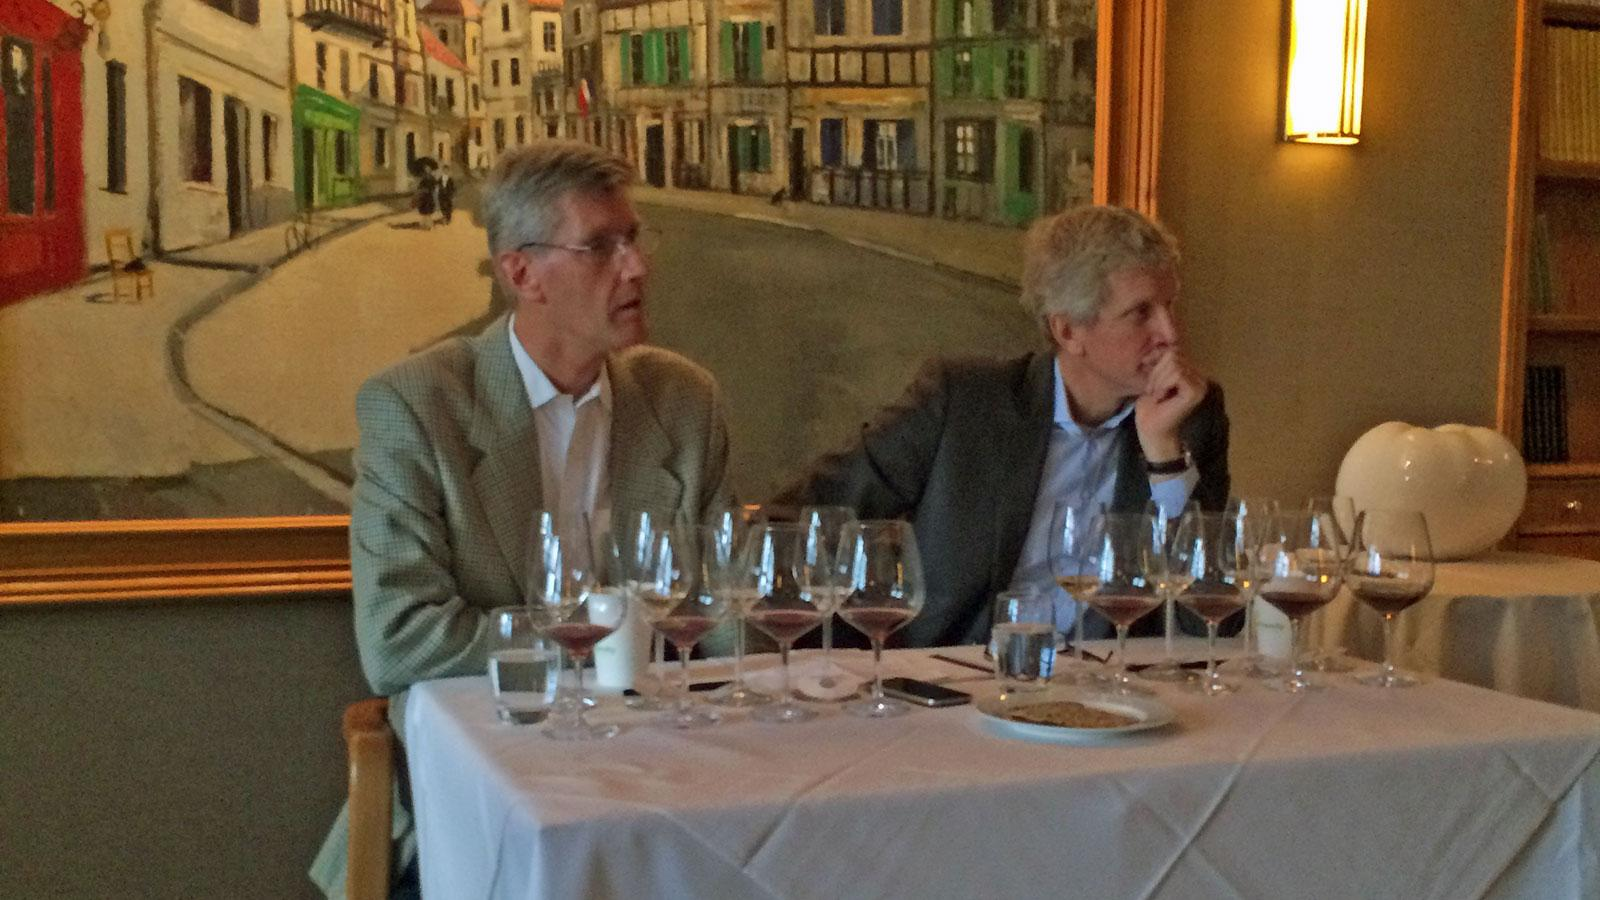 Philippe (left) and Laurent Drouhin hosted a candid conversation about biodynamics.